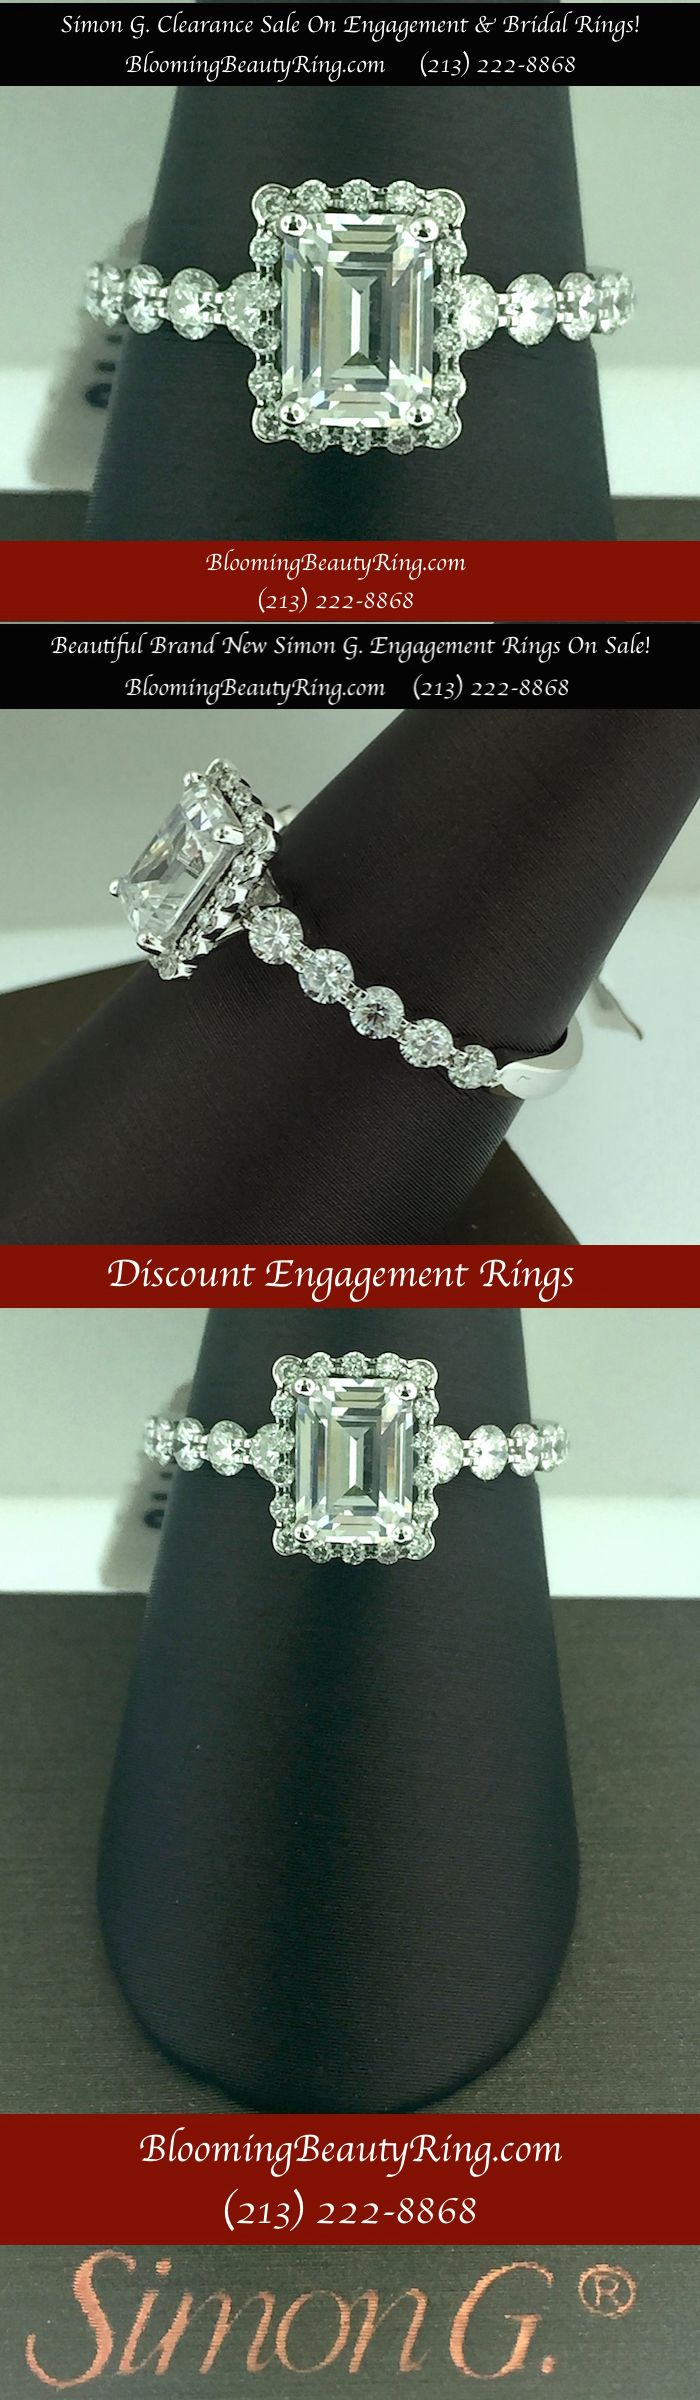 simon g bridal rings and engagement rings clearance sale - Clearance Wedding Rings